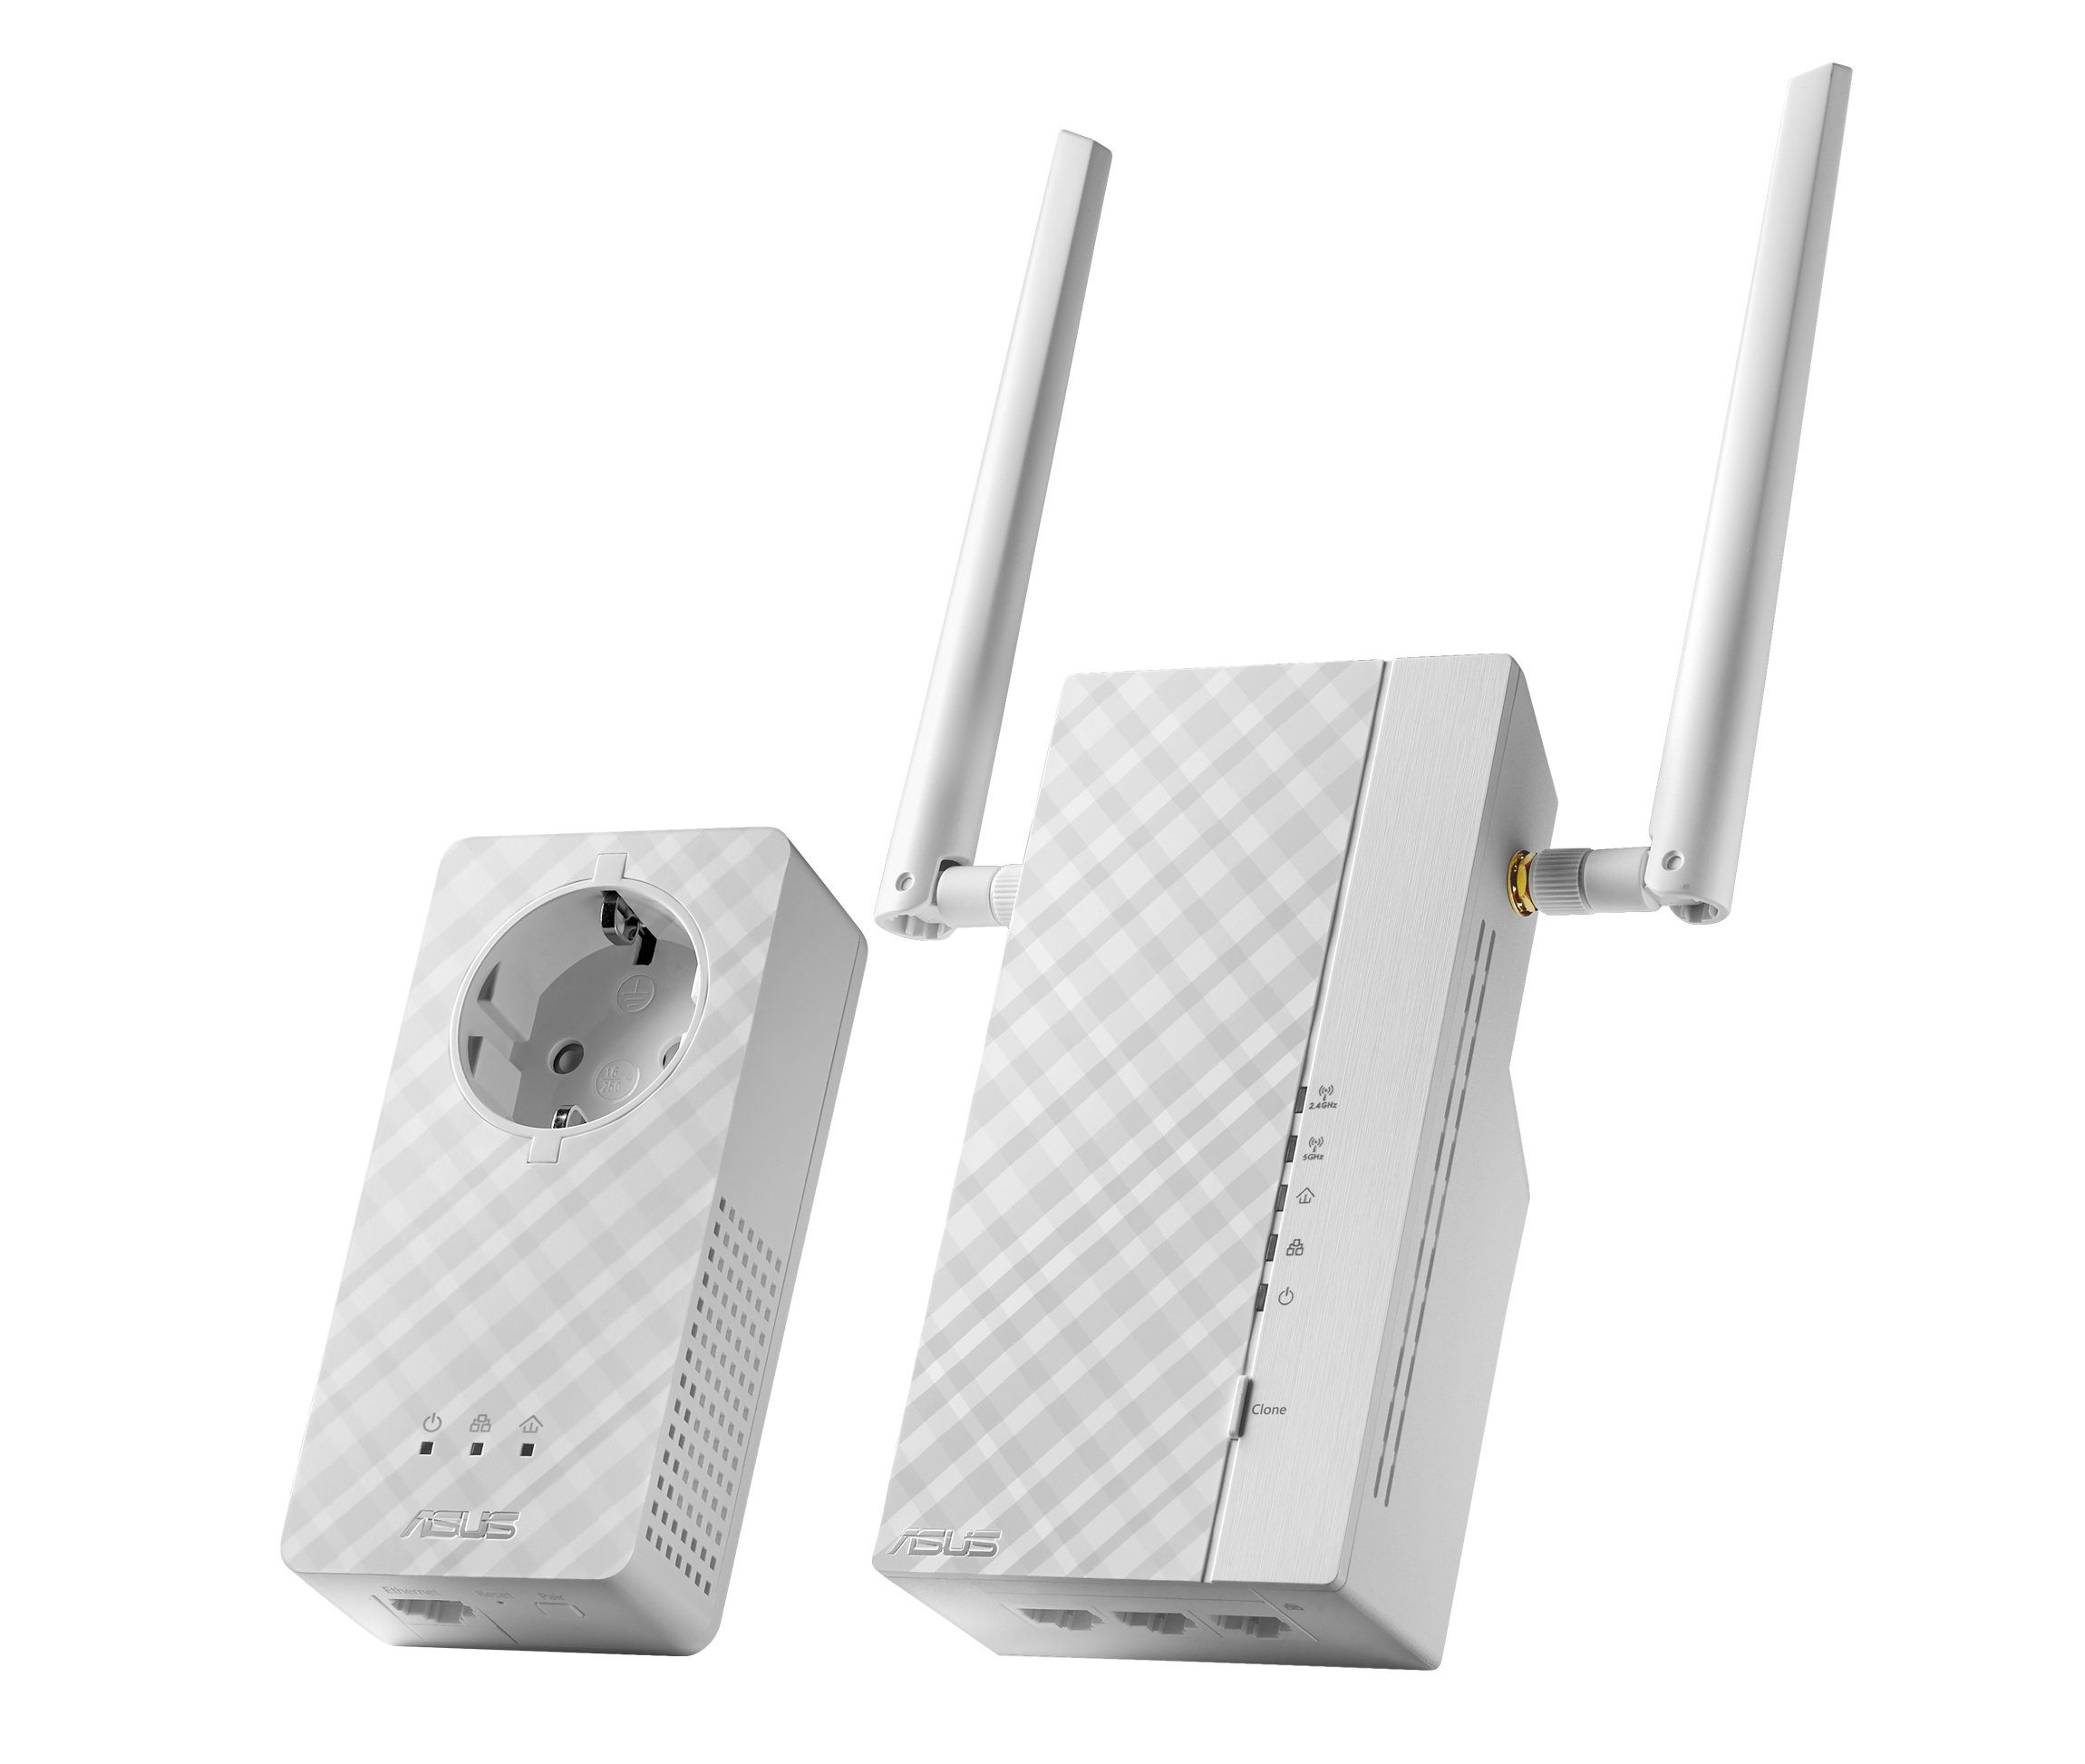 ASUS Powerline PL-AC56 Kit WLAN Kombination